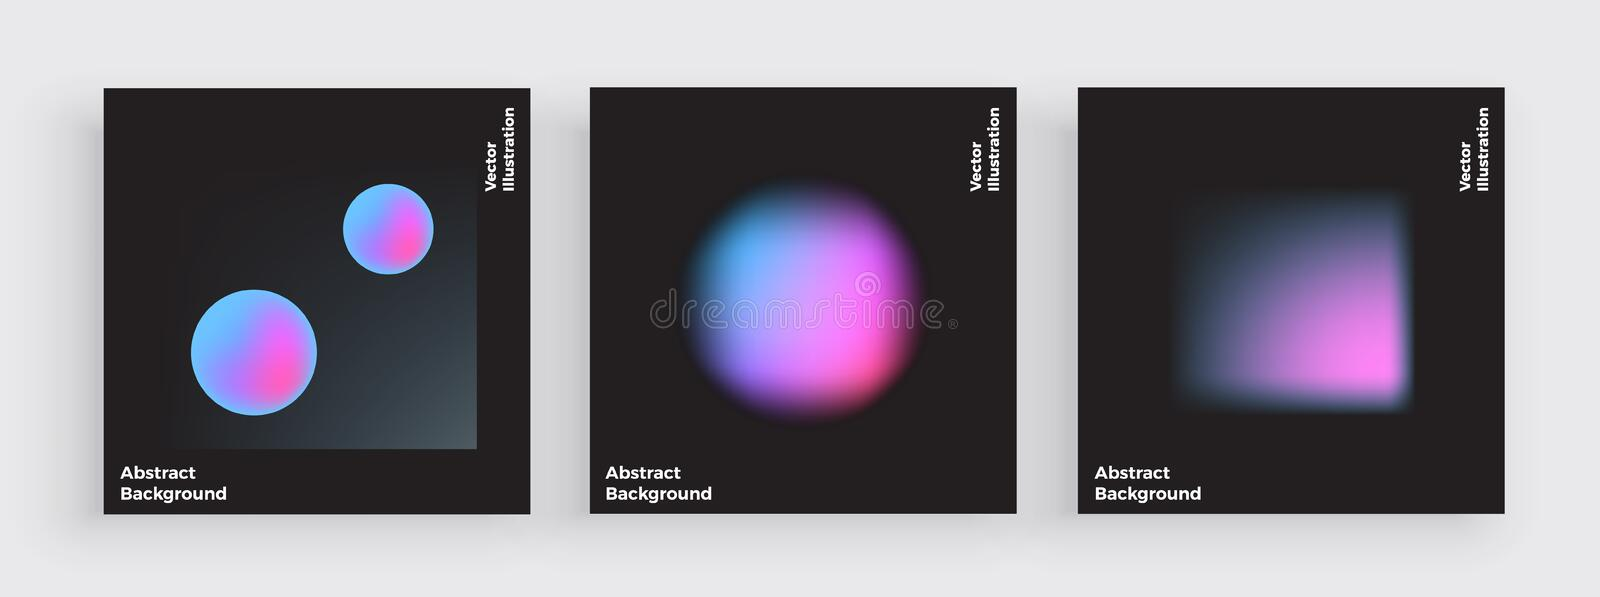 Minimal cover design, gradient blurs, liquid color covers set. Fluid shapes with bright colors. Trendy futuristic design posters. royalty free illustration